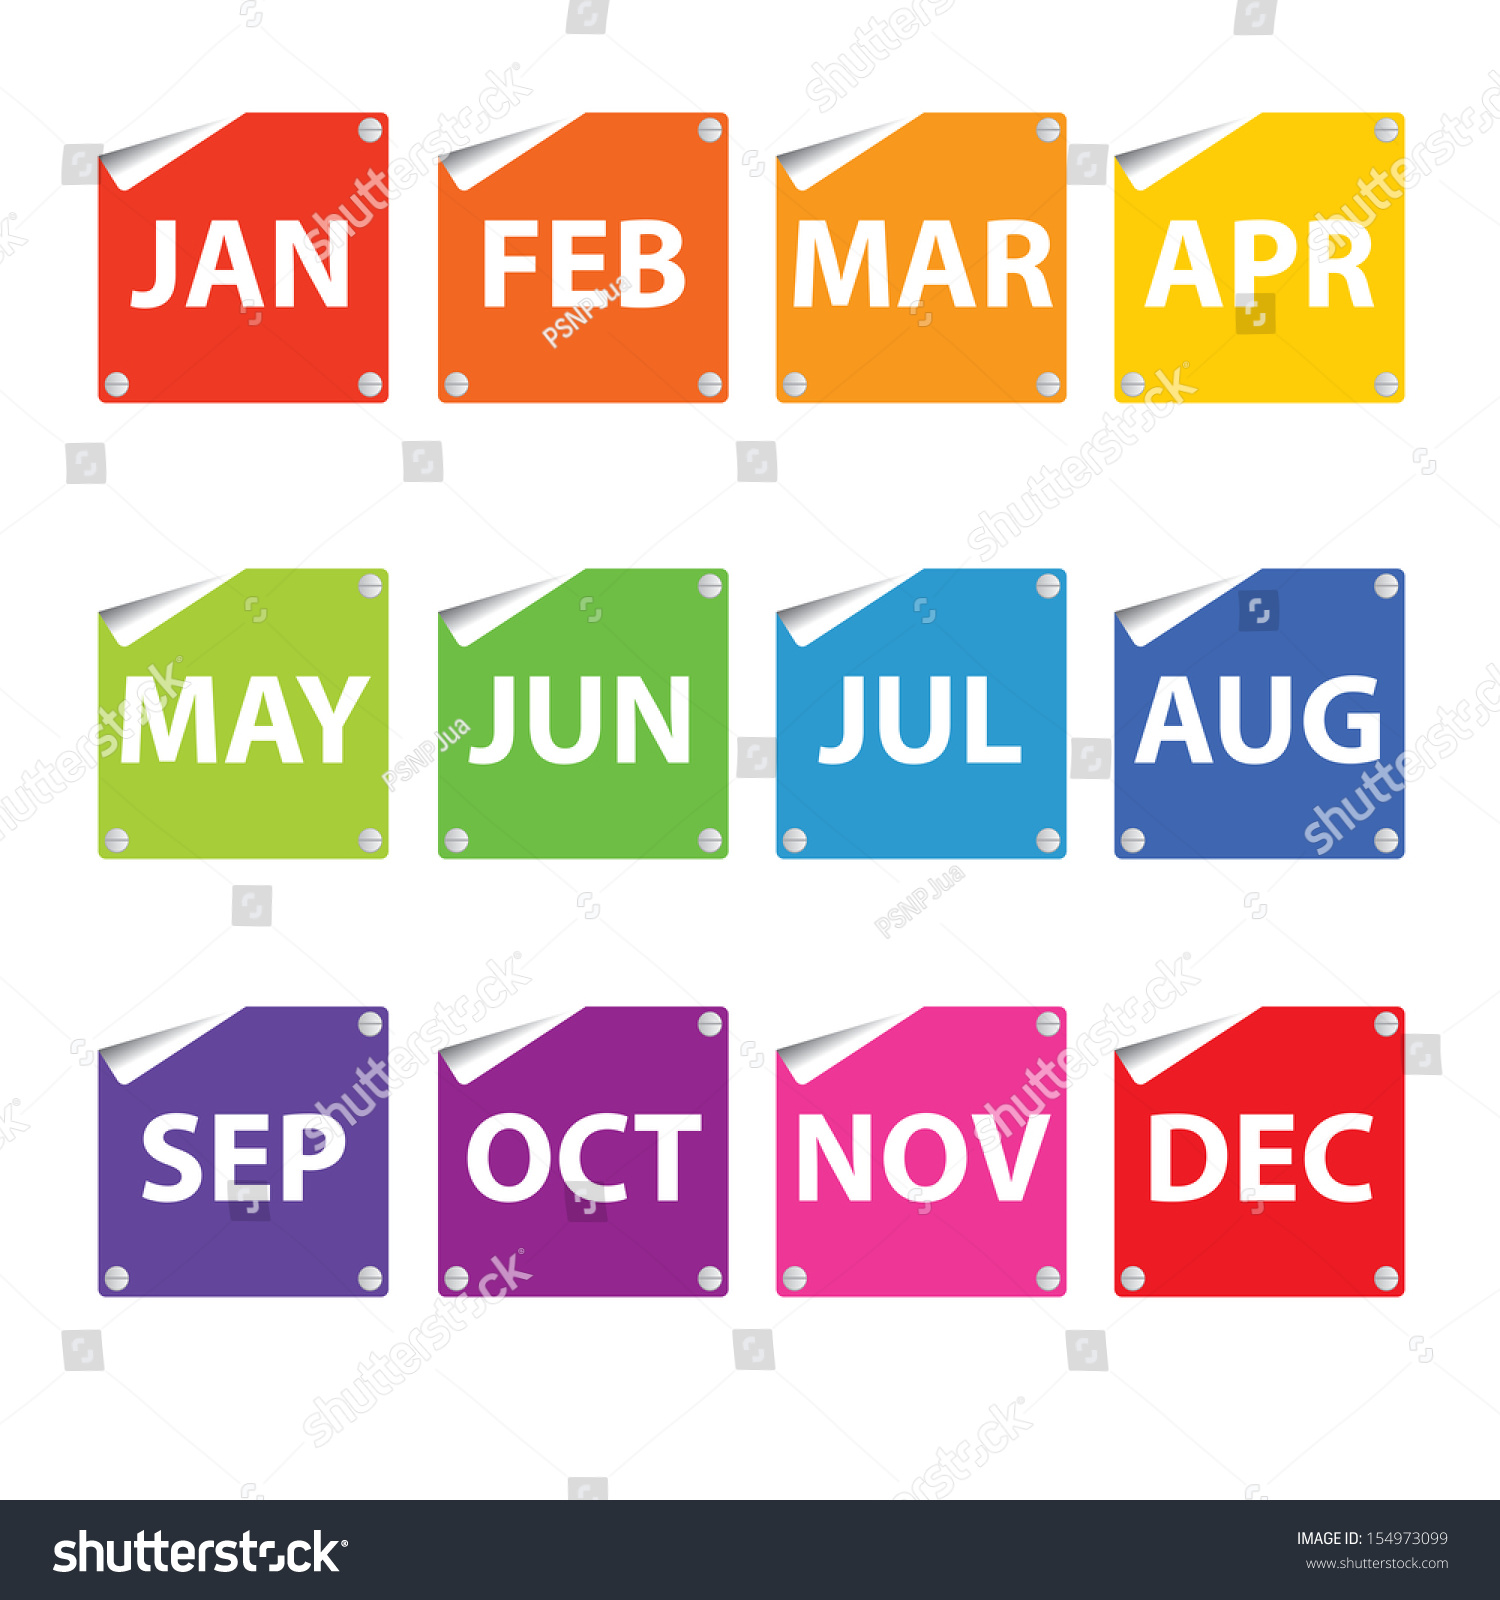 Colorful Month Stickers. Stock Photo 154973099 : Shutterstock